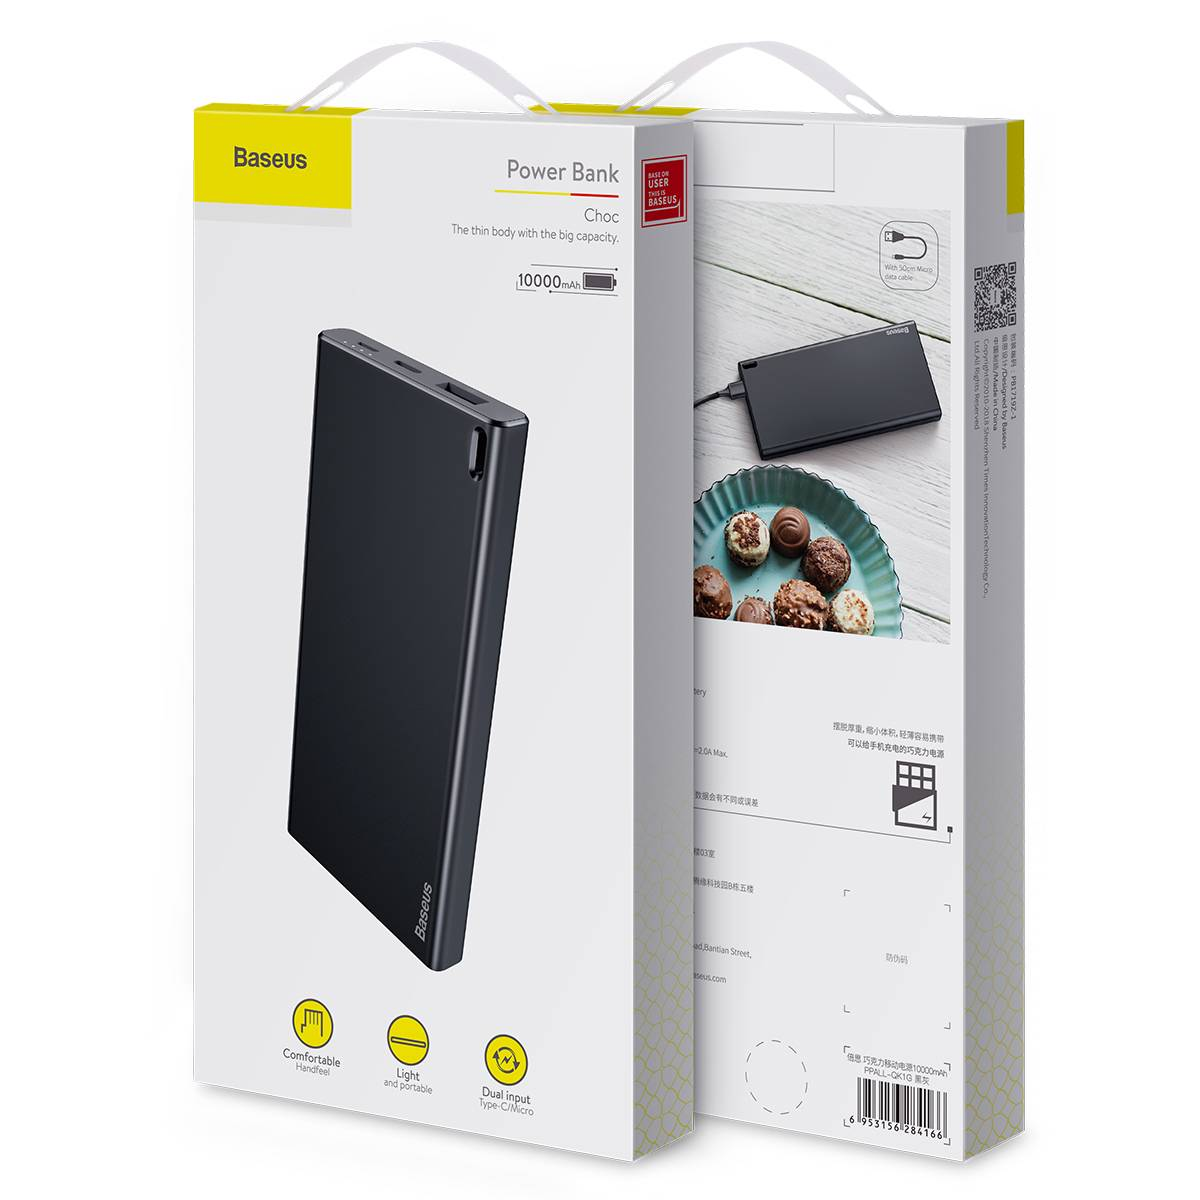 Baseus · Power Bank · Ultra Slim 10.000mAh · Black